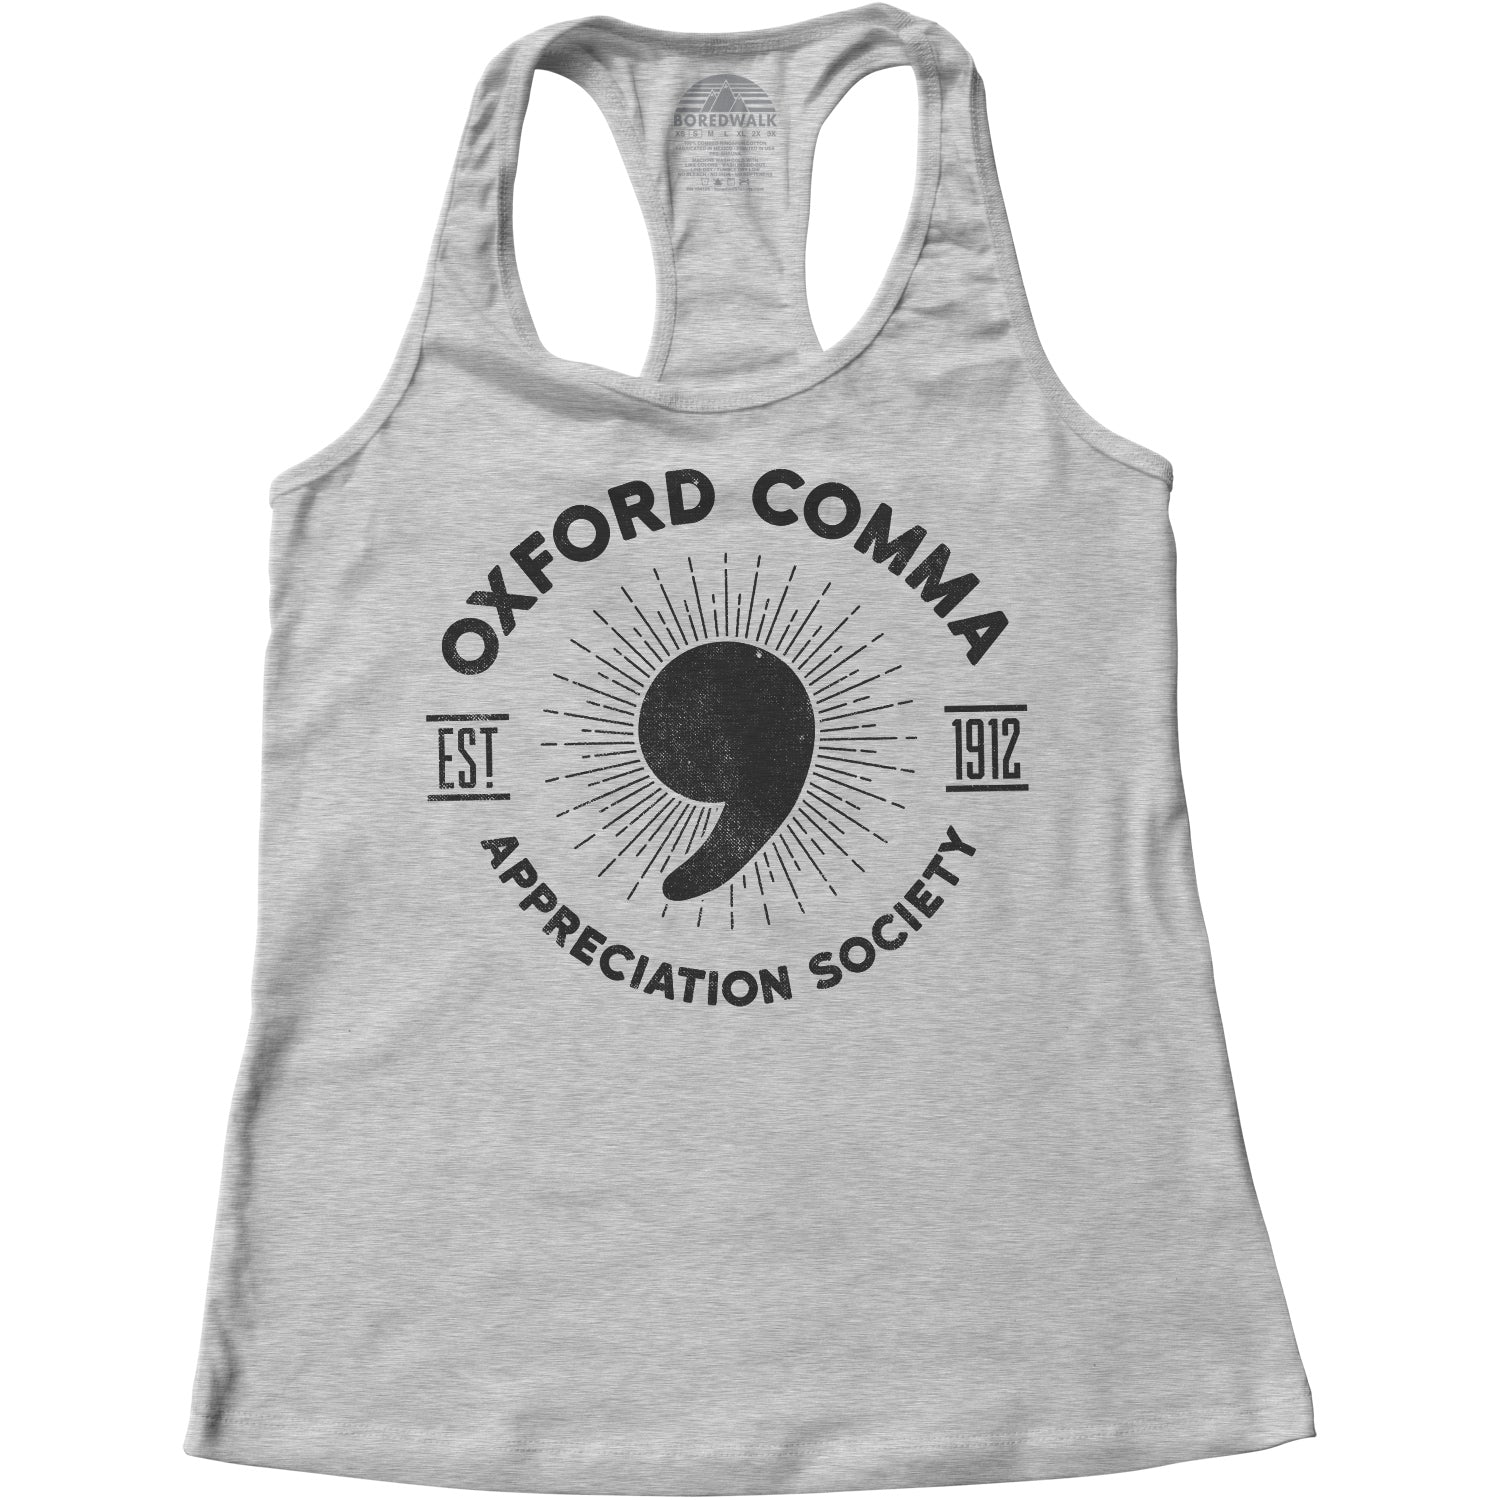 Women's Oxford Comma Appreciation Society Racerback Tank Top